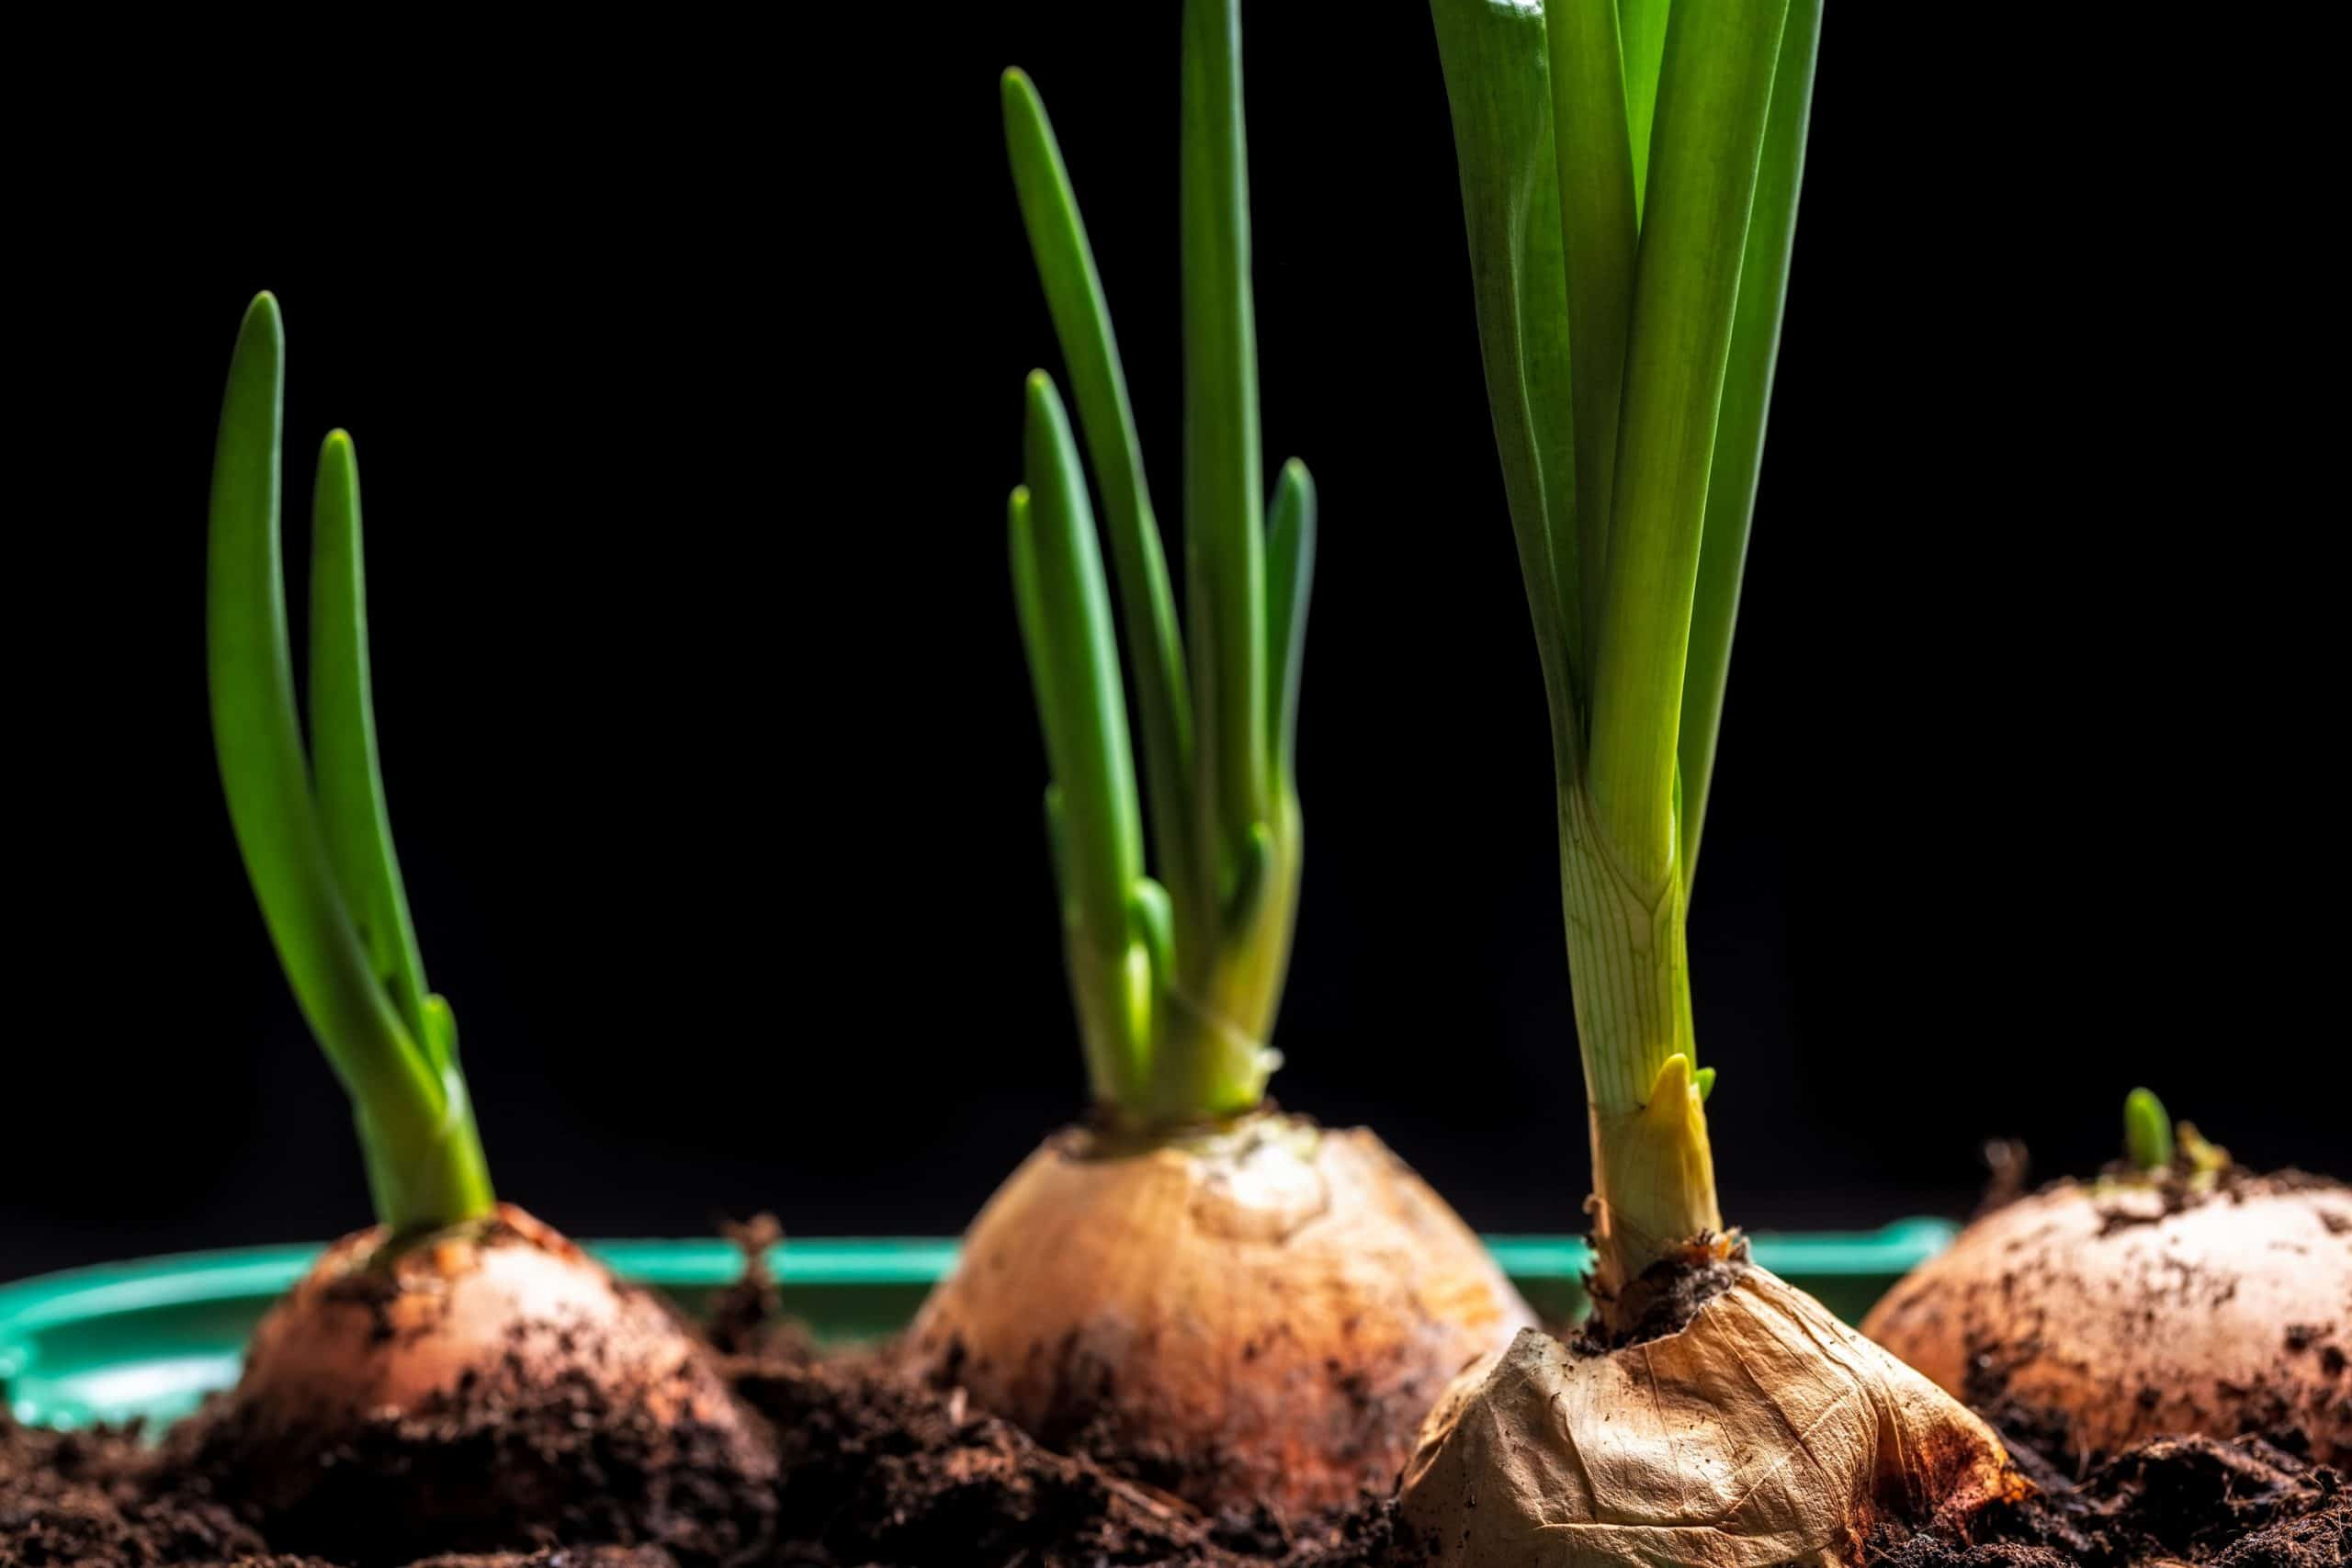 How to Keep Green Onions Fresh?